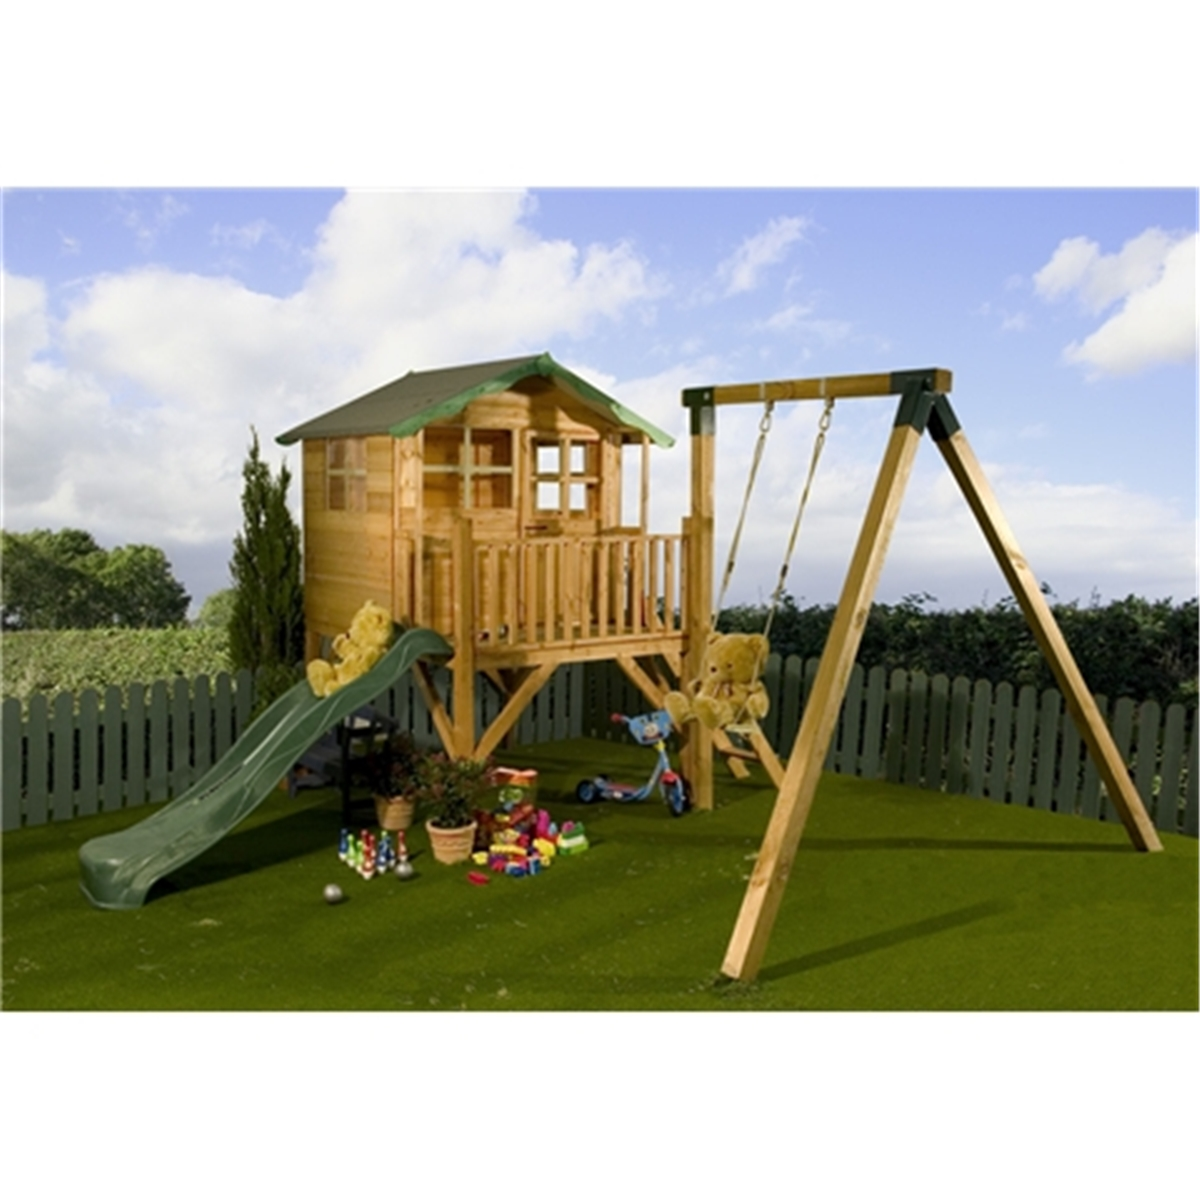 5 x 7 wooden tower playhouse with slide and swing. Black Bedroom Furniture Sets. Home Design Ideas